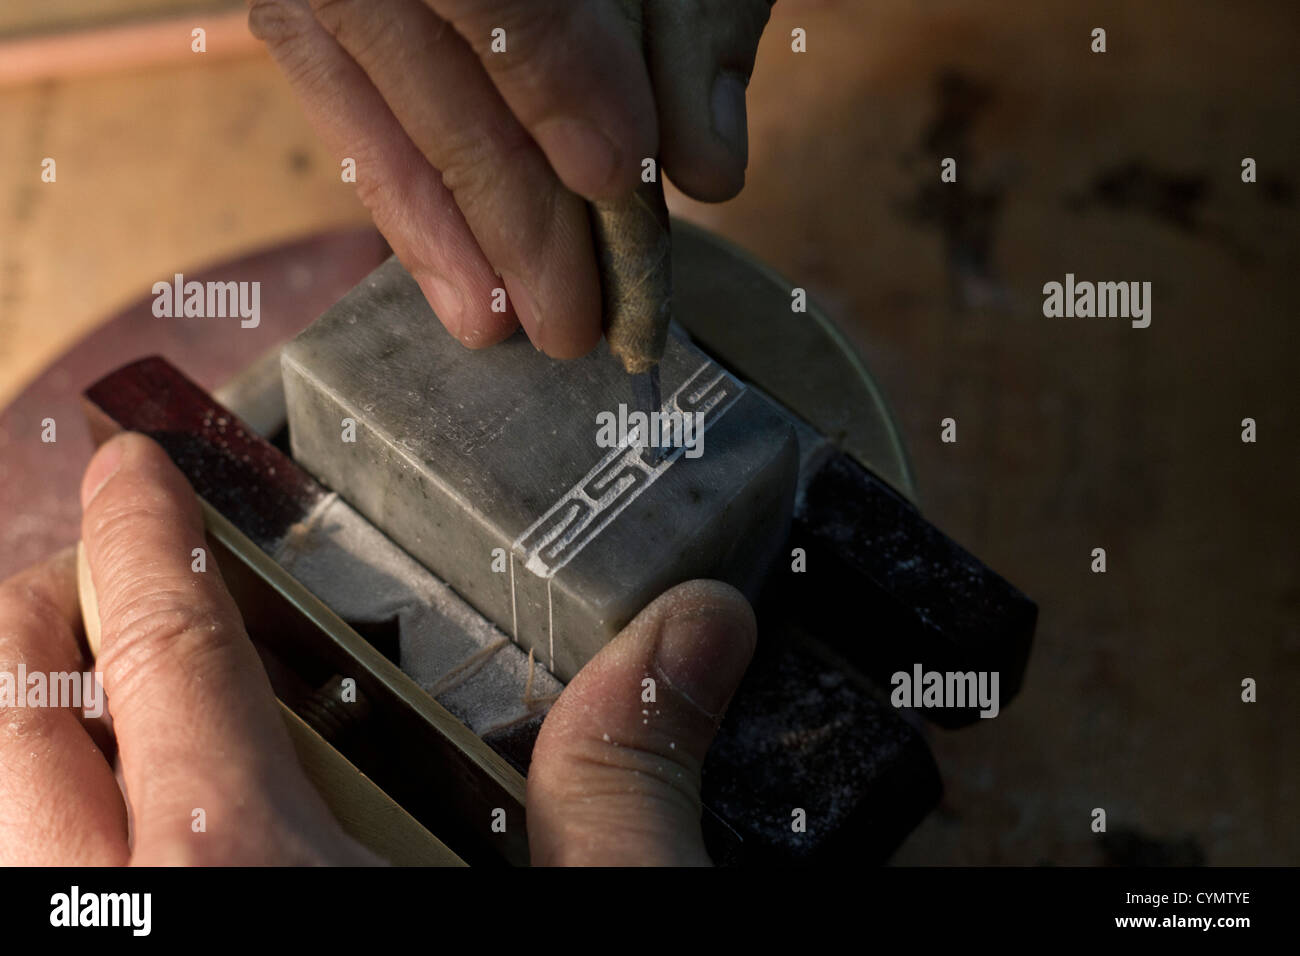 An engraver at work in a shop in a street in Liulichang, Beijing China. - Stock Image